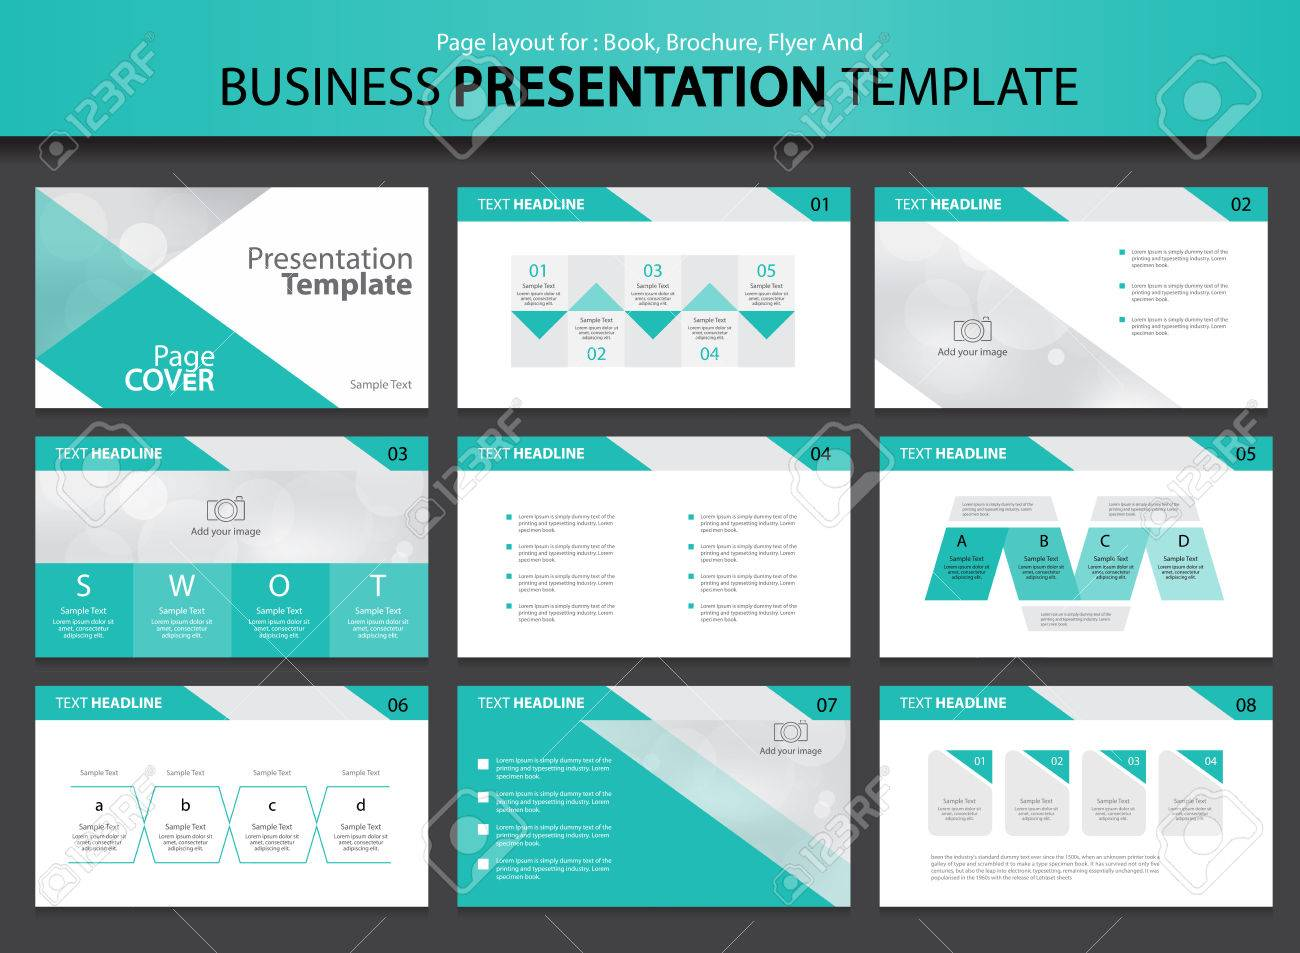 Page Layout Design For Presentation And Brochure And Book Template ...